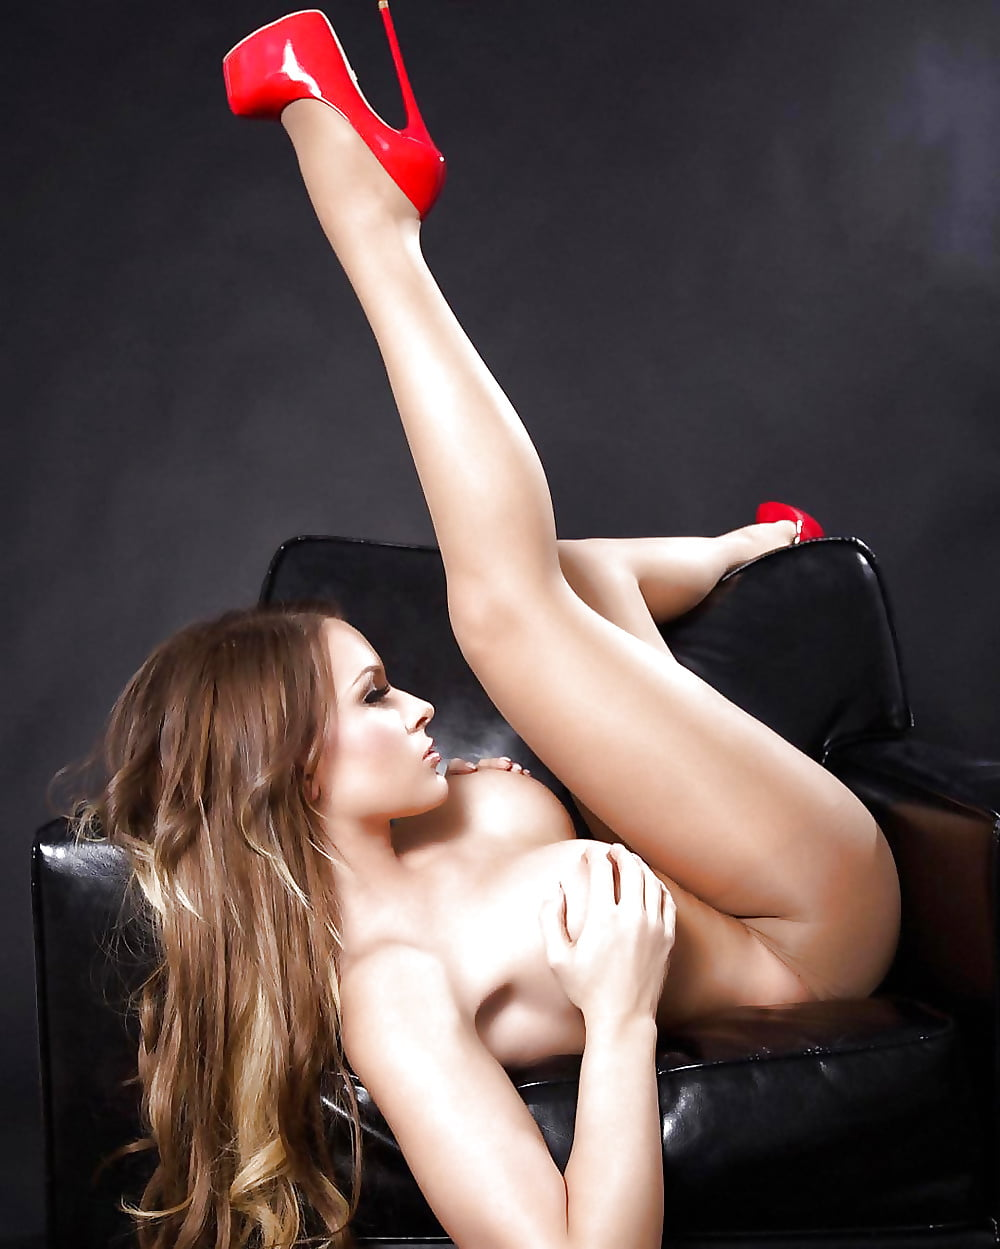 Casana lei in nothing but high heels